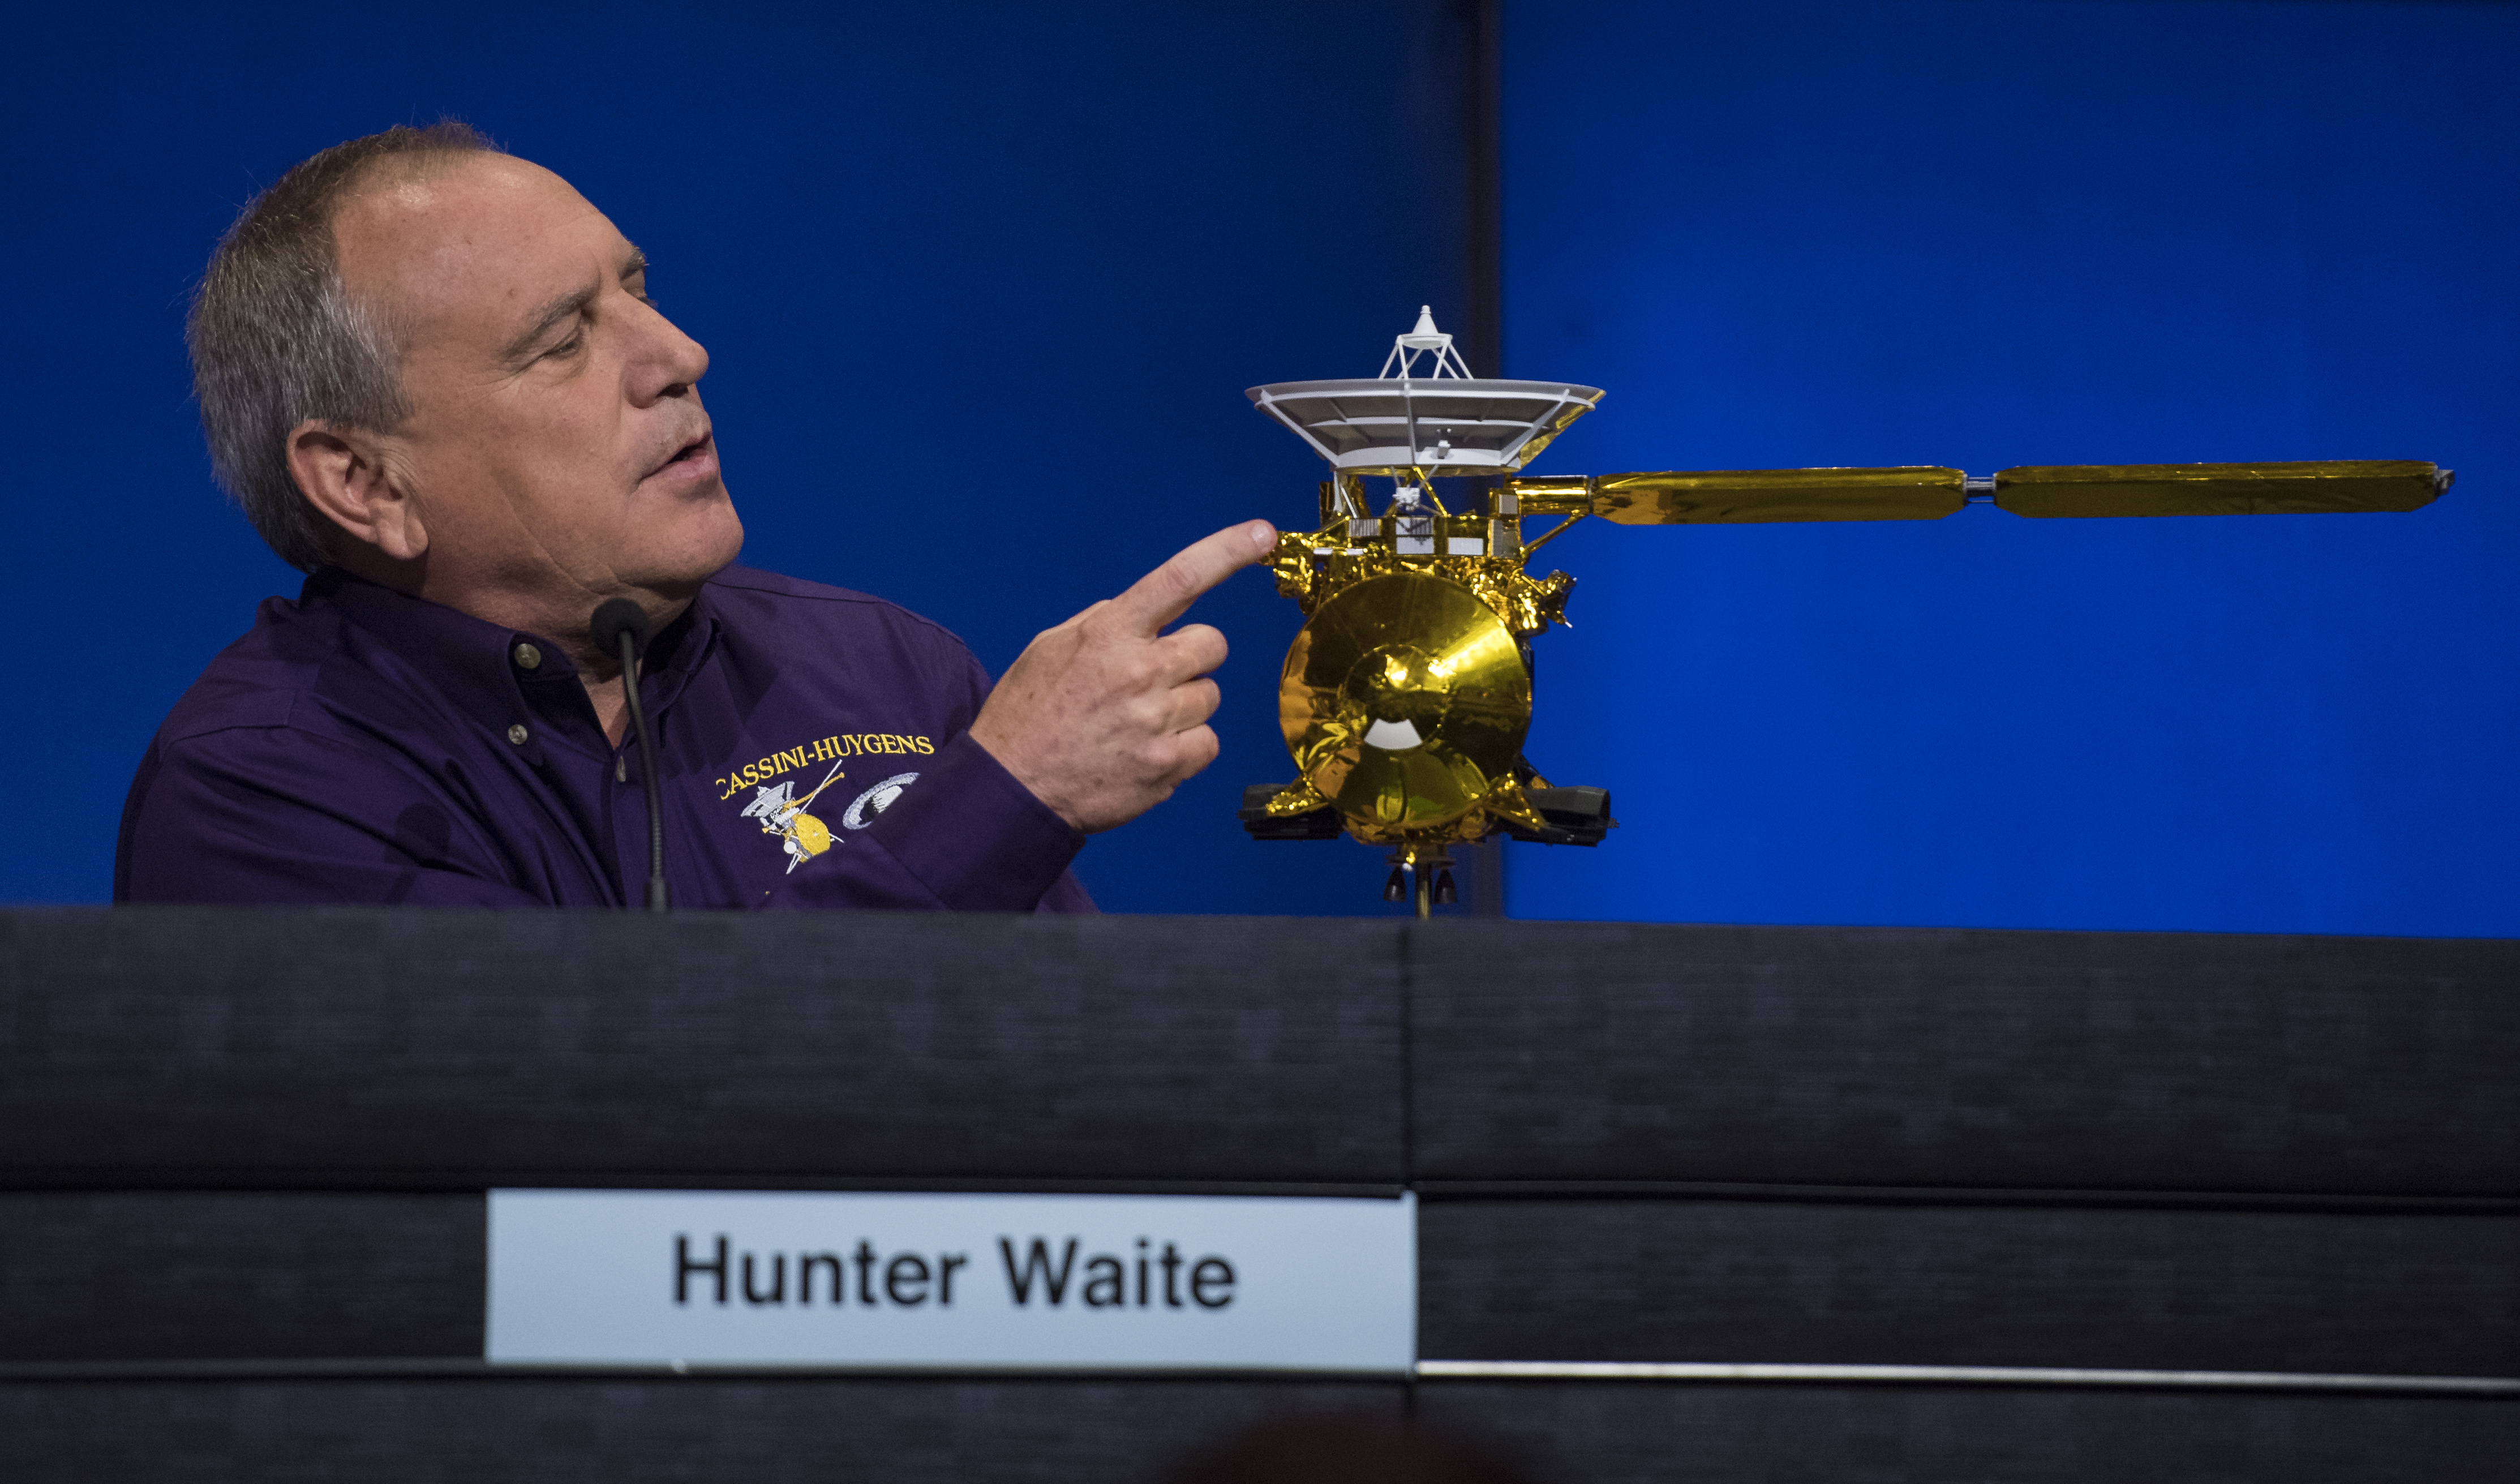 Man pointing at Cassini spacecraft model.